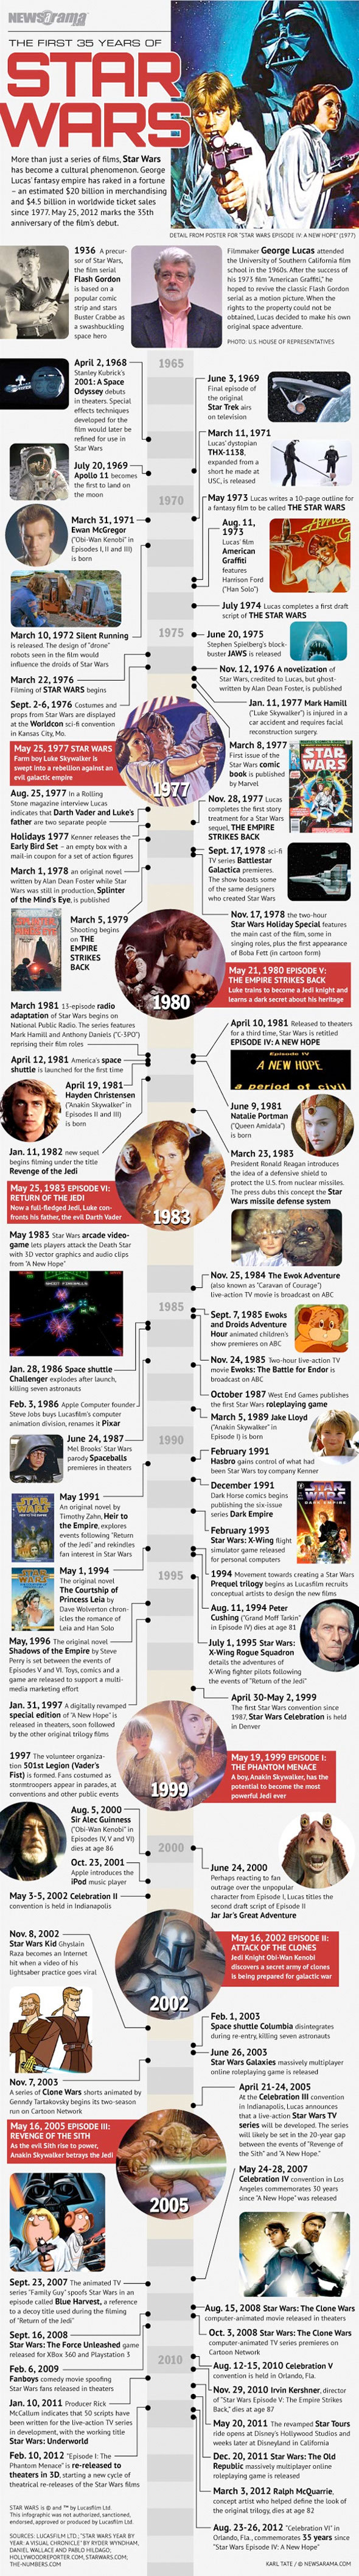 The-First-35-Years-Of-Star-Wars-infographic